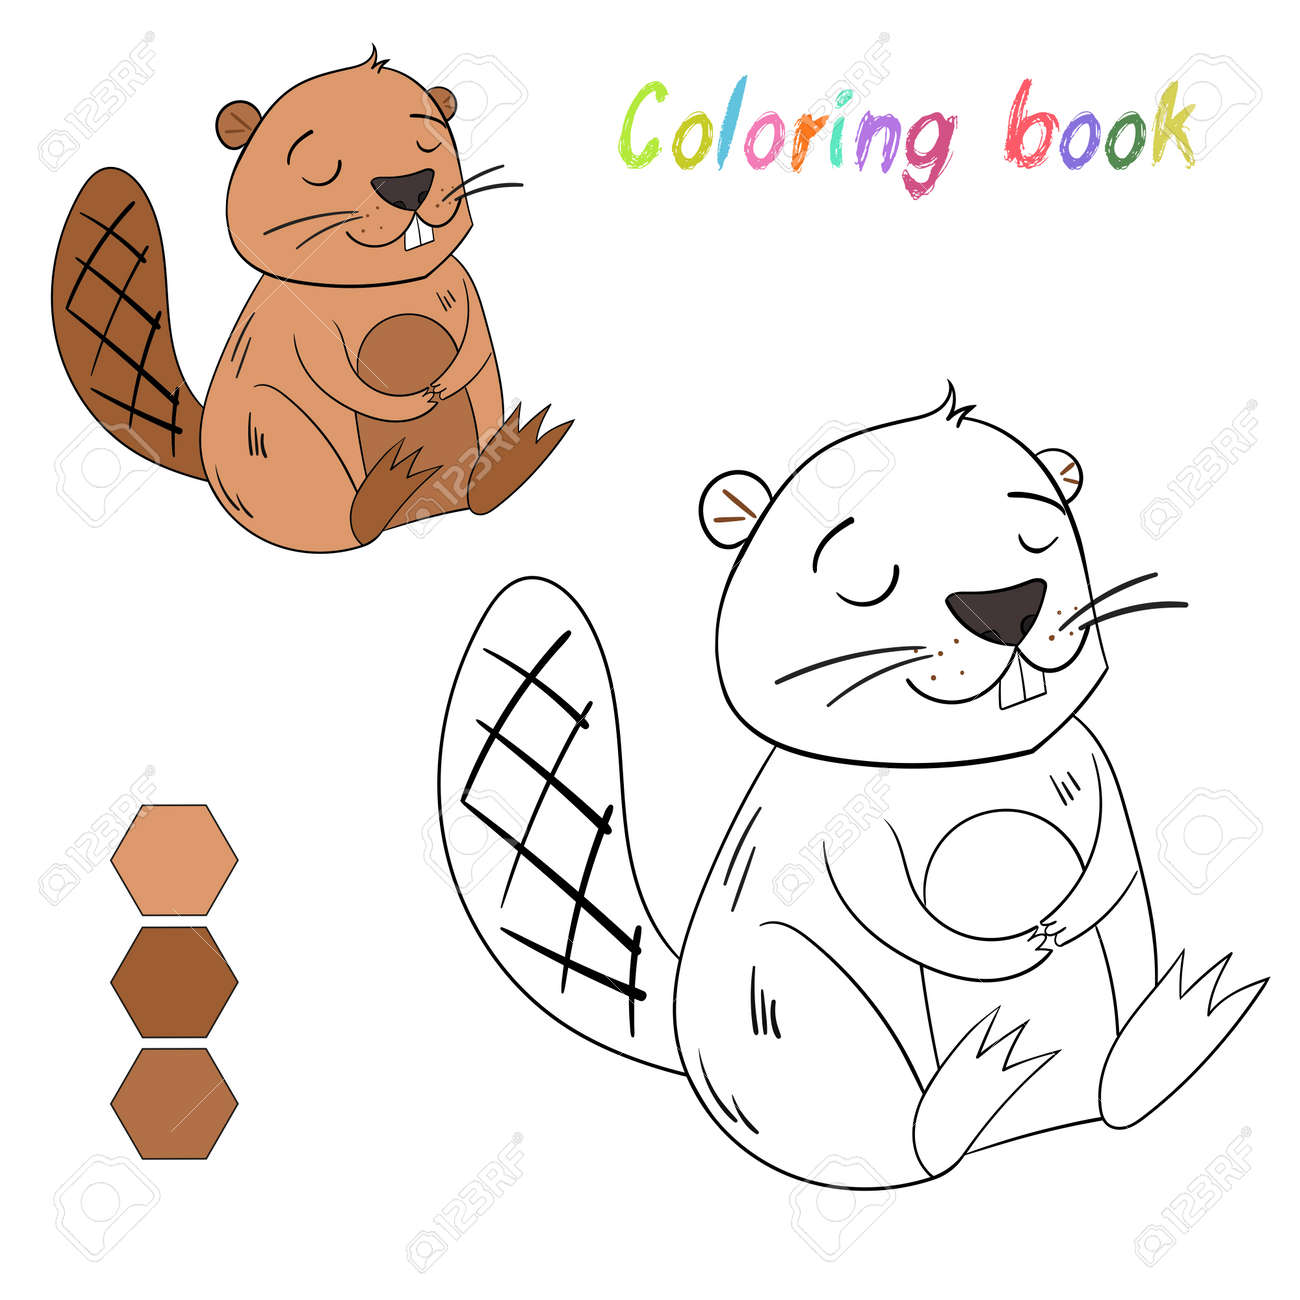 Coloring Book Beaver Kids Layout For Game Cartoon Hand Drawn Doodle Vector Illustration Stock